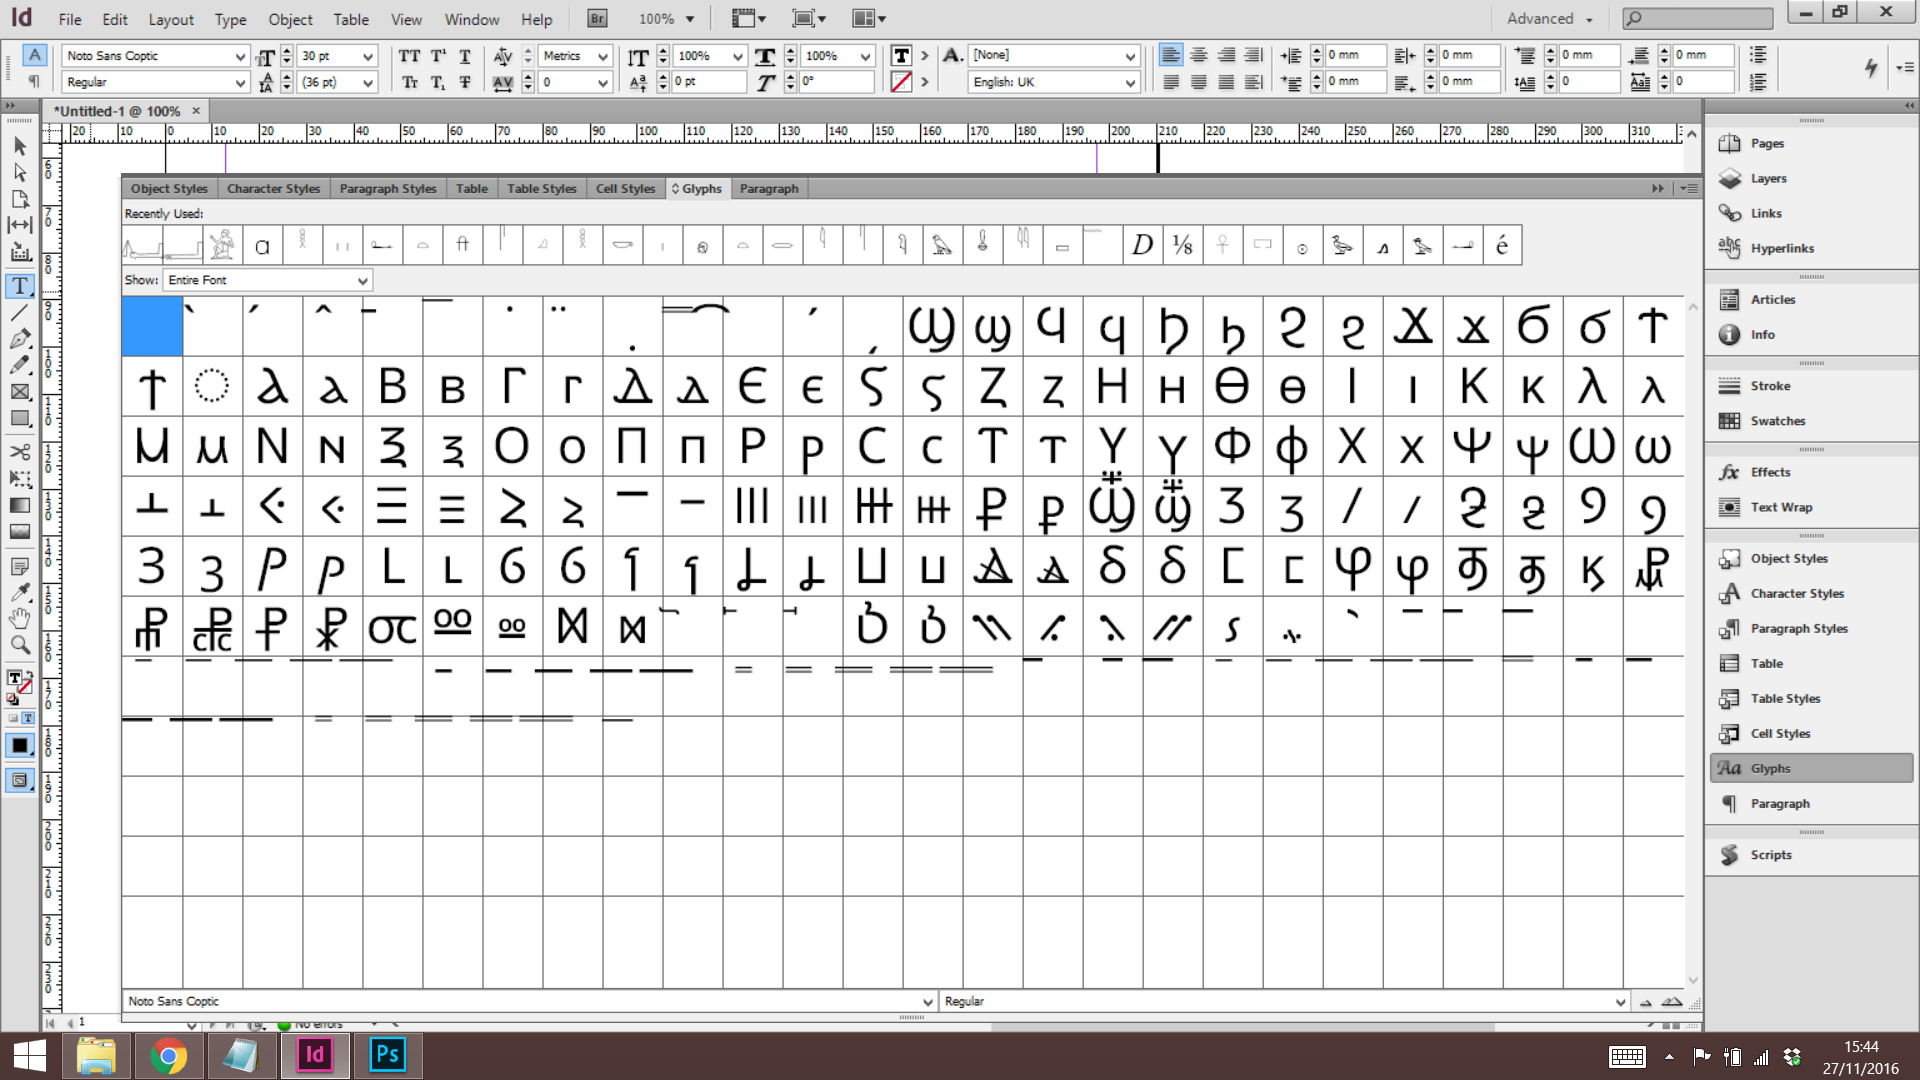 A screenshot showing all the glyphs in the Google Noto Coptic font